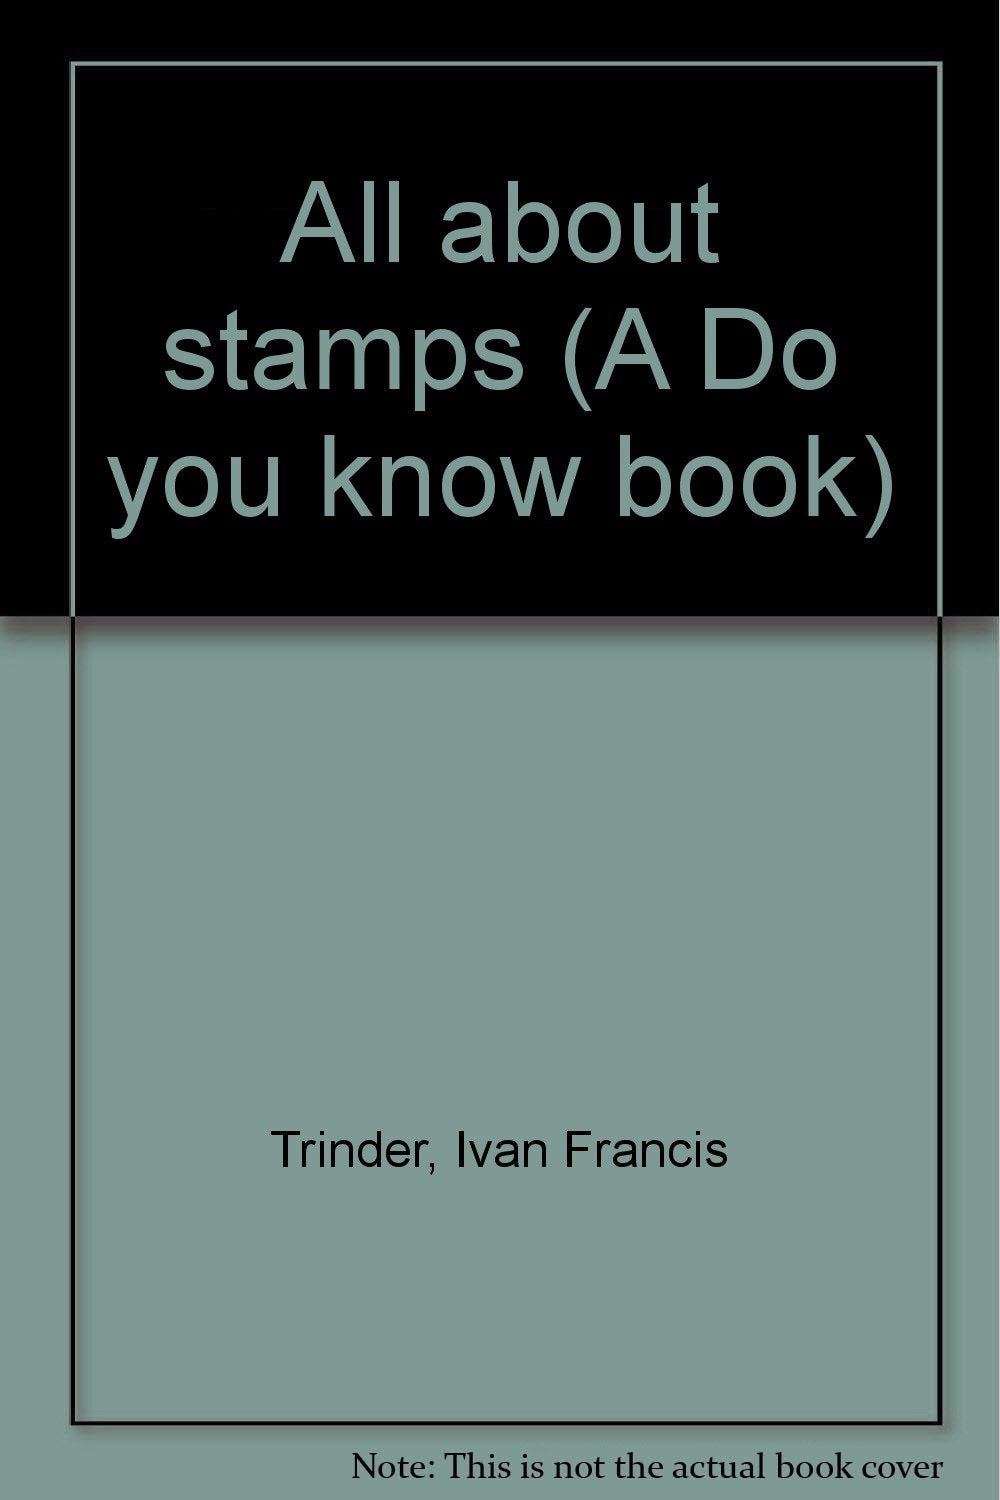 All about stamps (A Do you know book) [Unknown Binding] Trinder, Ivan Francis